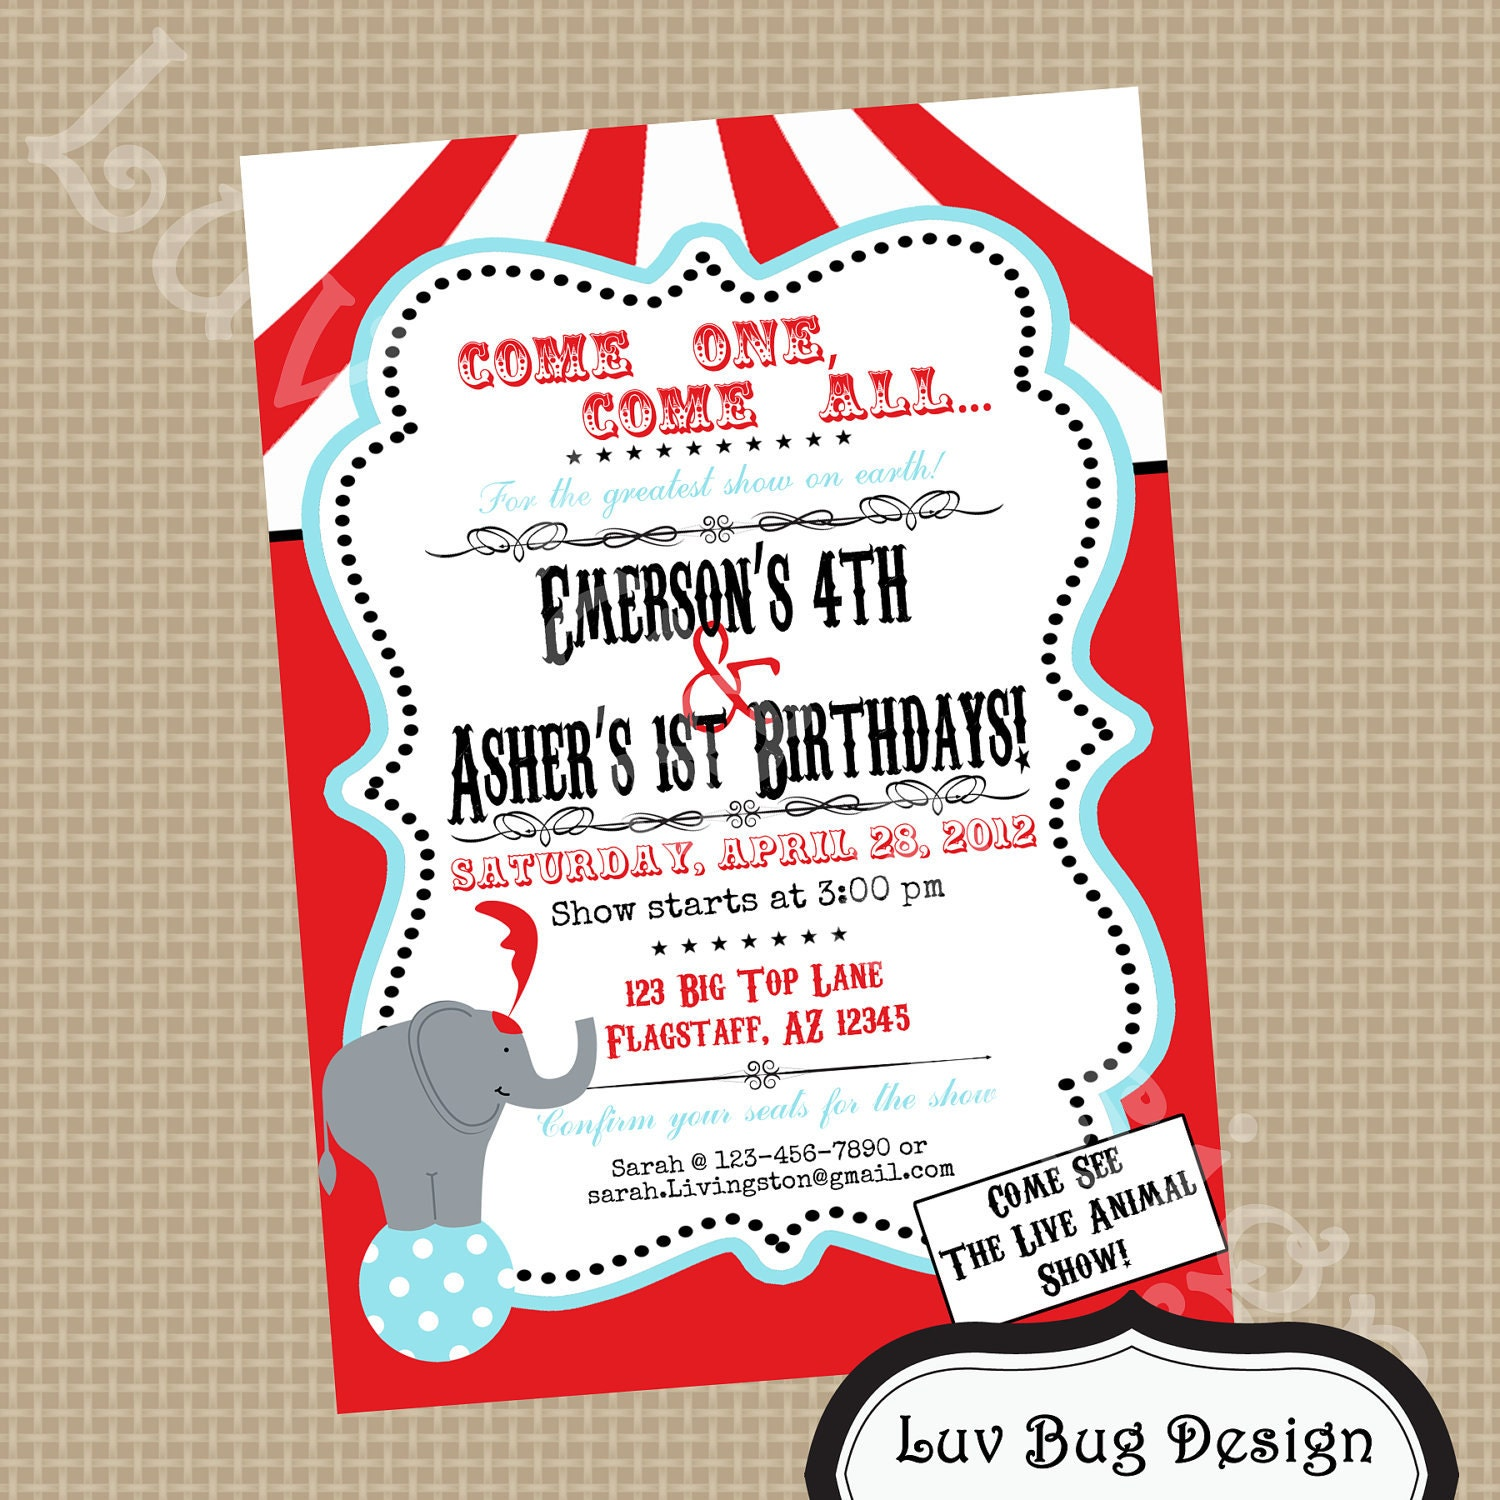 Carnival Birthday Party Invitations for your inspiration to make invitation template look beautiful